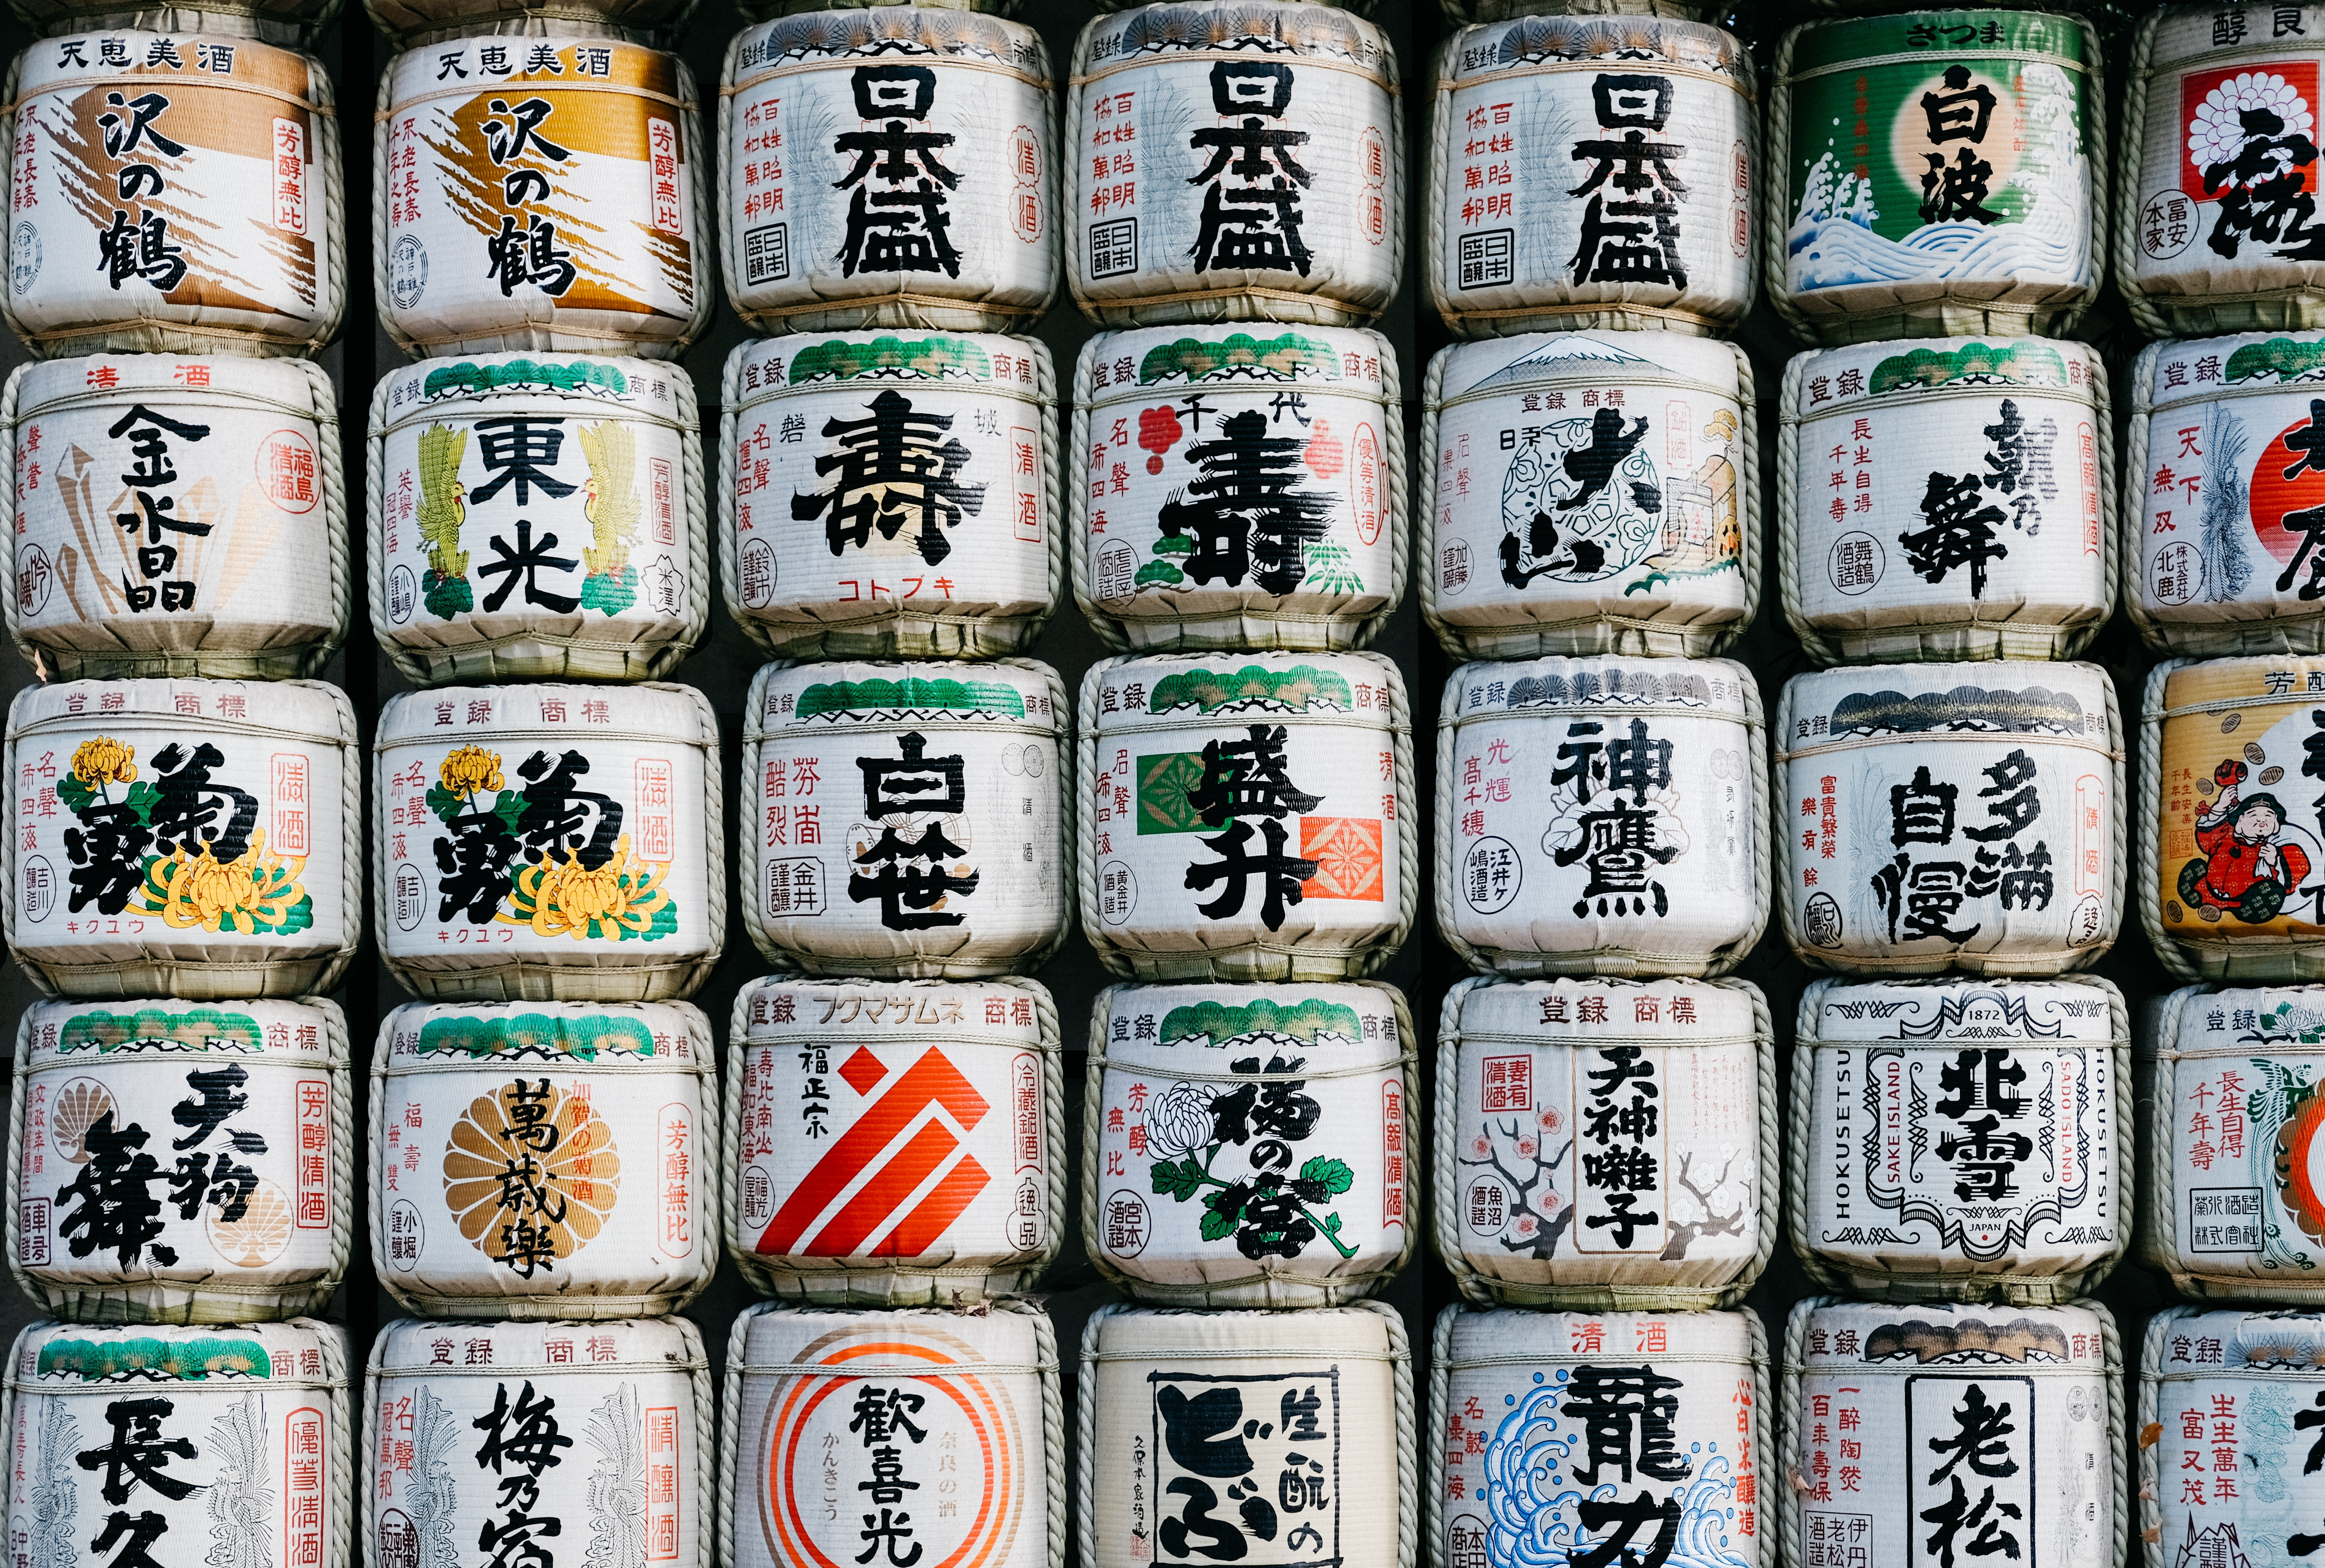 Decorative jars of Japanese food at a grocery store